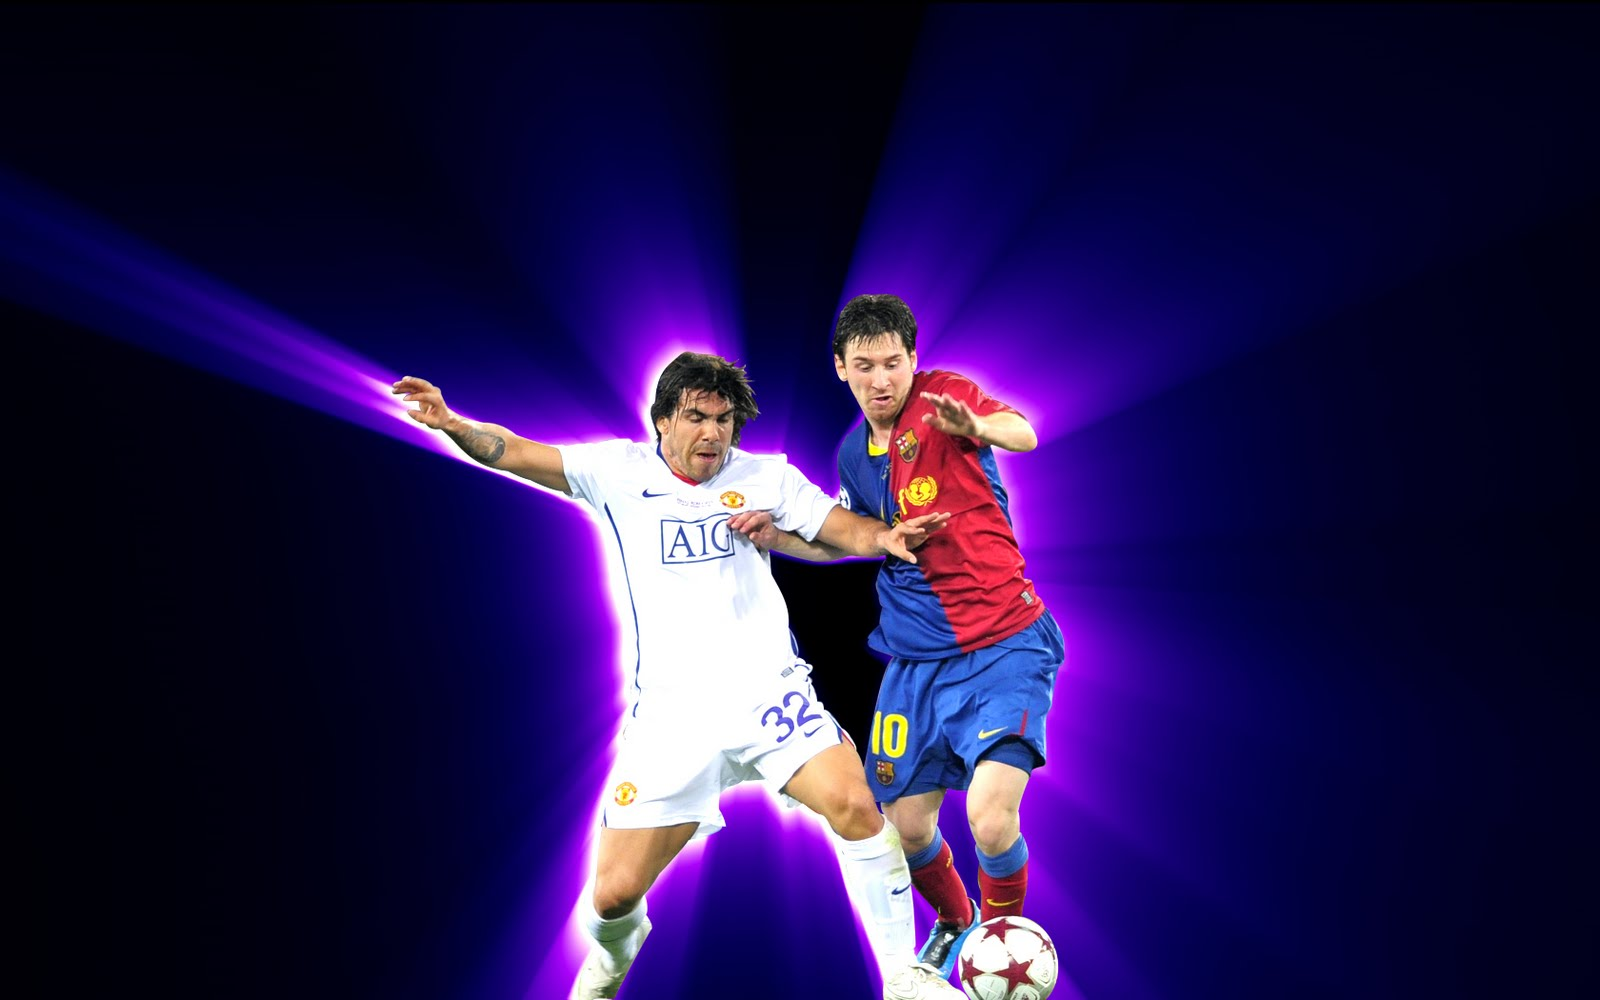 Messi Y Tevez Wallpaper Final De Champions En Roma